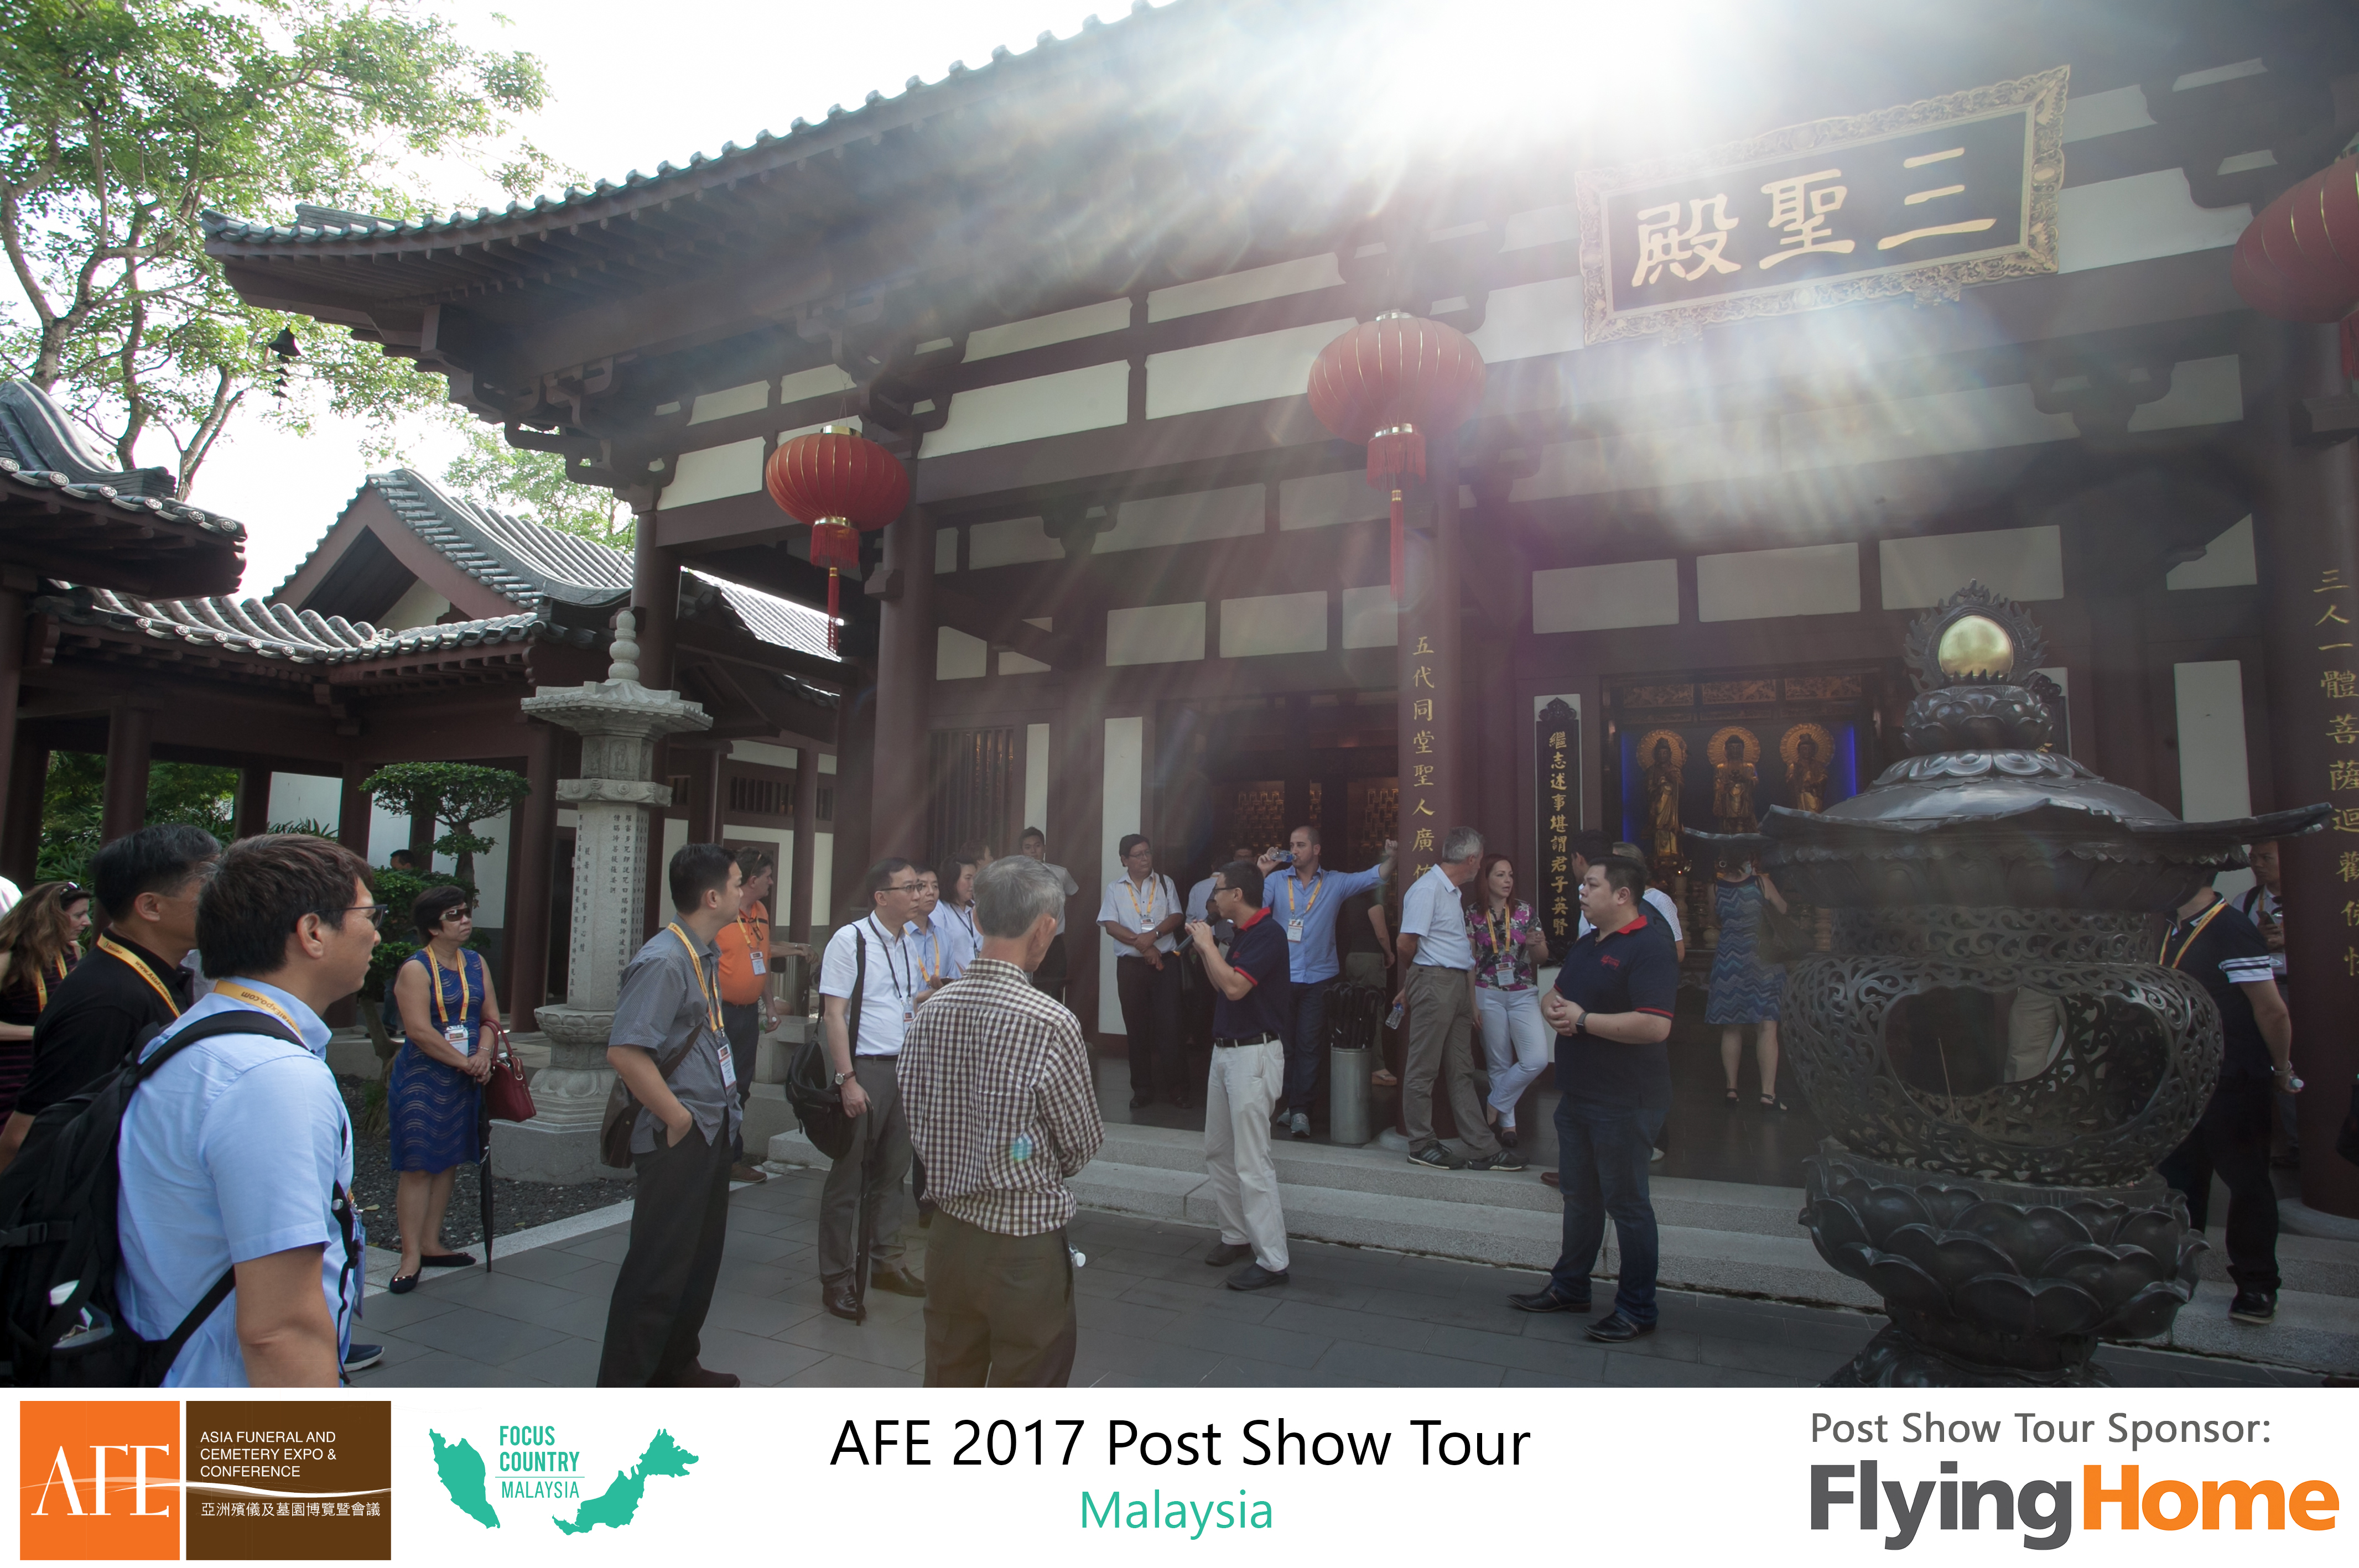 AFE Post Show Tour 2017 Day 2 - 70